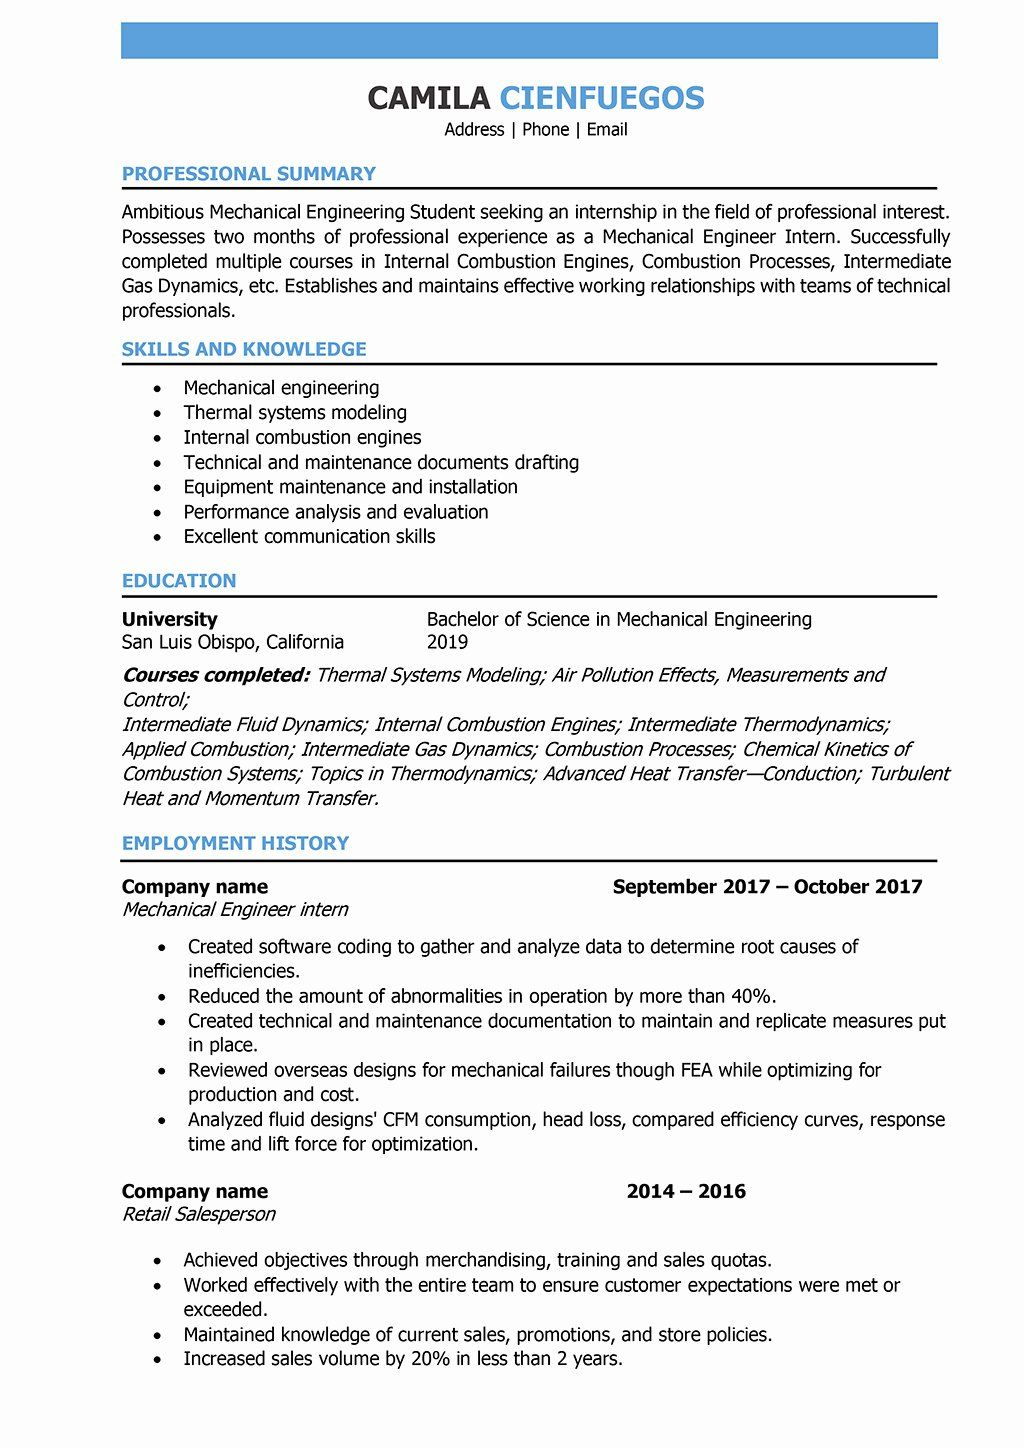 Engineering Resume Examples For Students Luxury Mechanical Engineer Resume Samples And Writin Engineering Resume Job Resume Examples Mechanical Engineer Resume